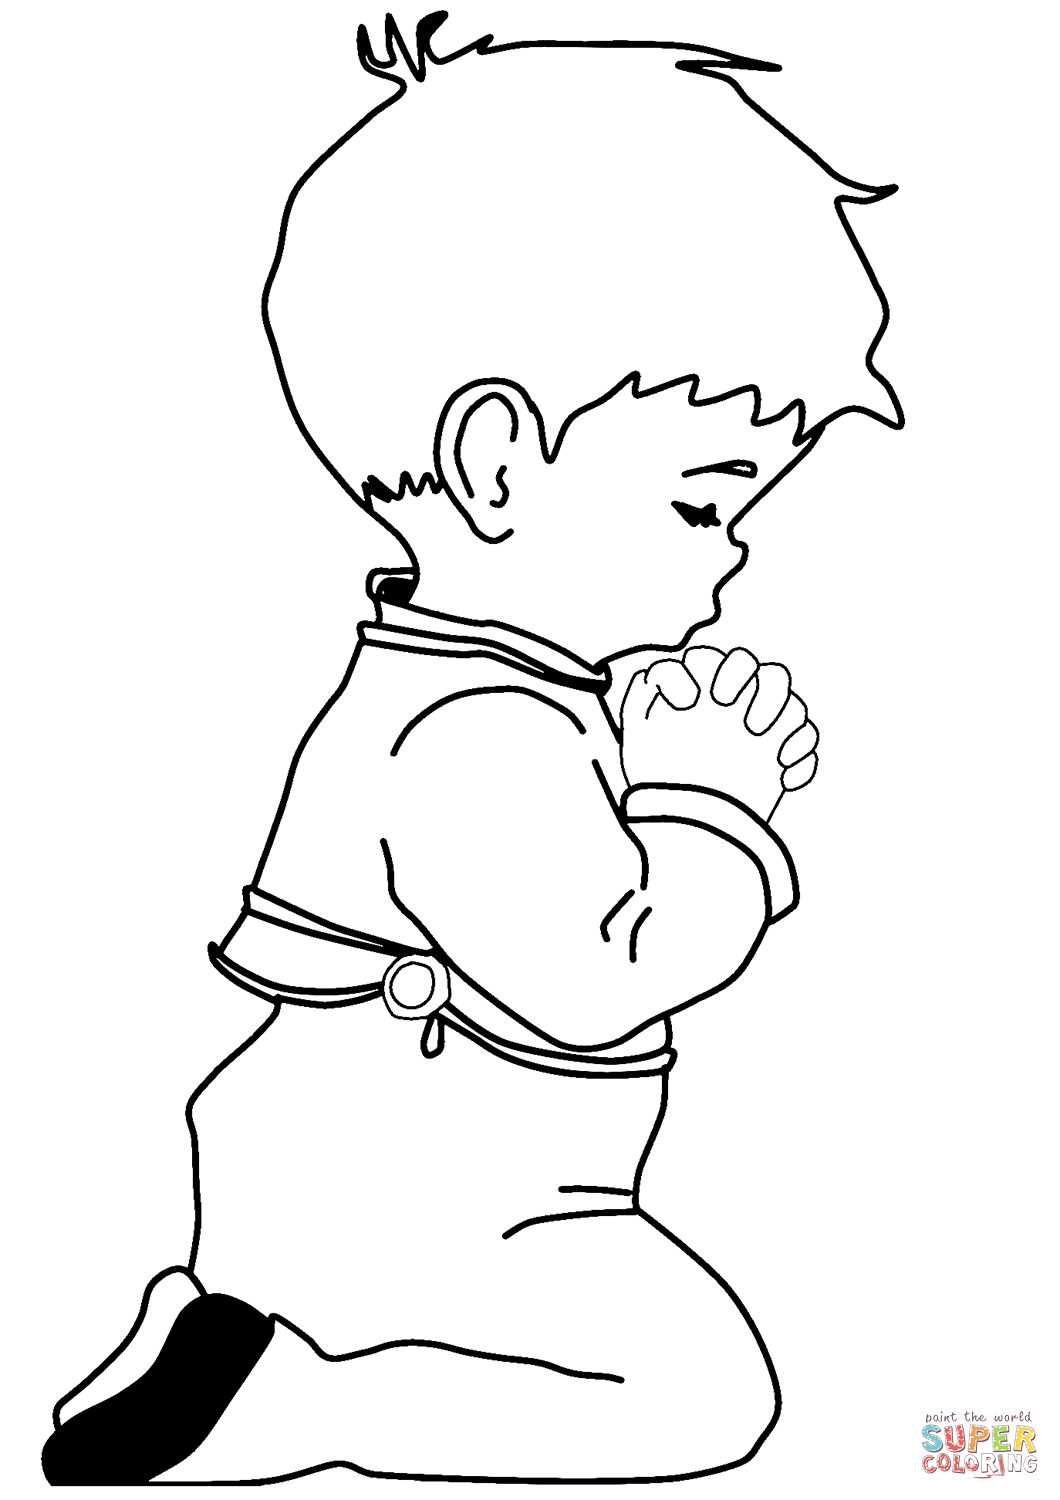 Praying Little Boy Coloring Page Free Printable Coloring Pages